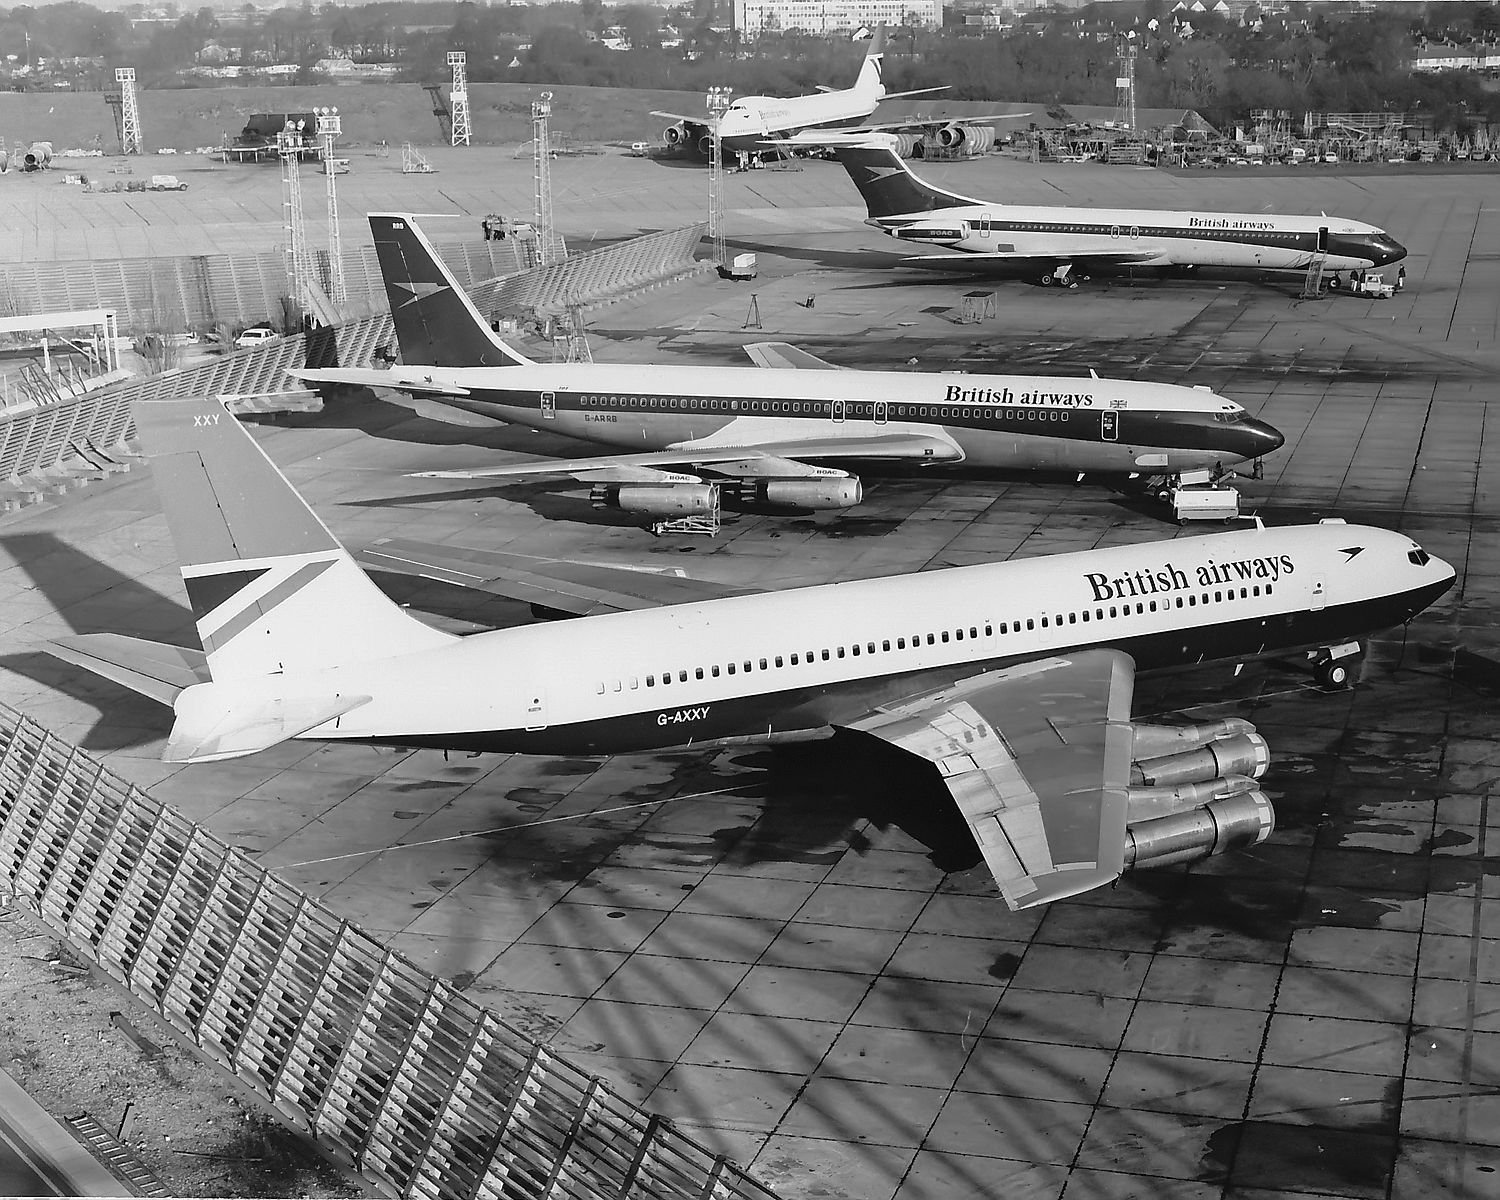 Cutaway of a pan am boeing 377 stratocruiser image from chris sloan - Still Boeing Strong How Aviation Giant S Iconic Planes Have Graced Britain S Skies For 75 Years Boeing 707 Aircraft And British